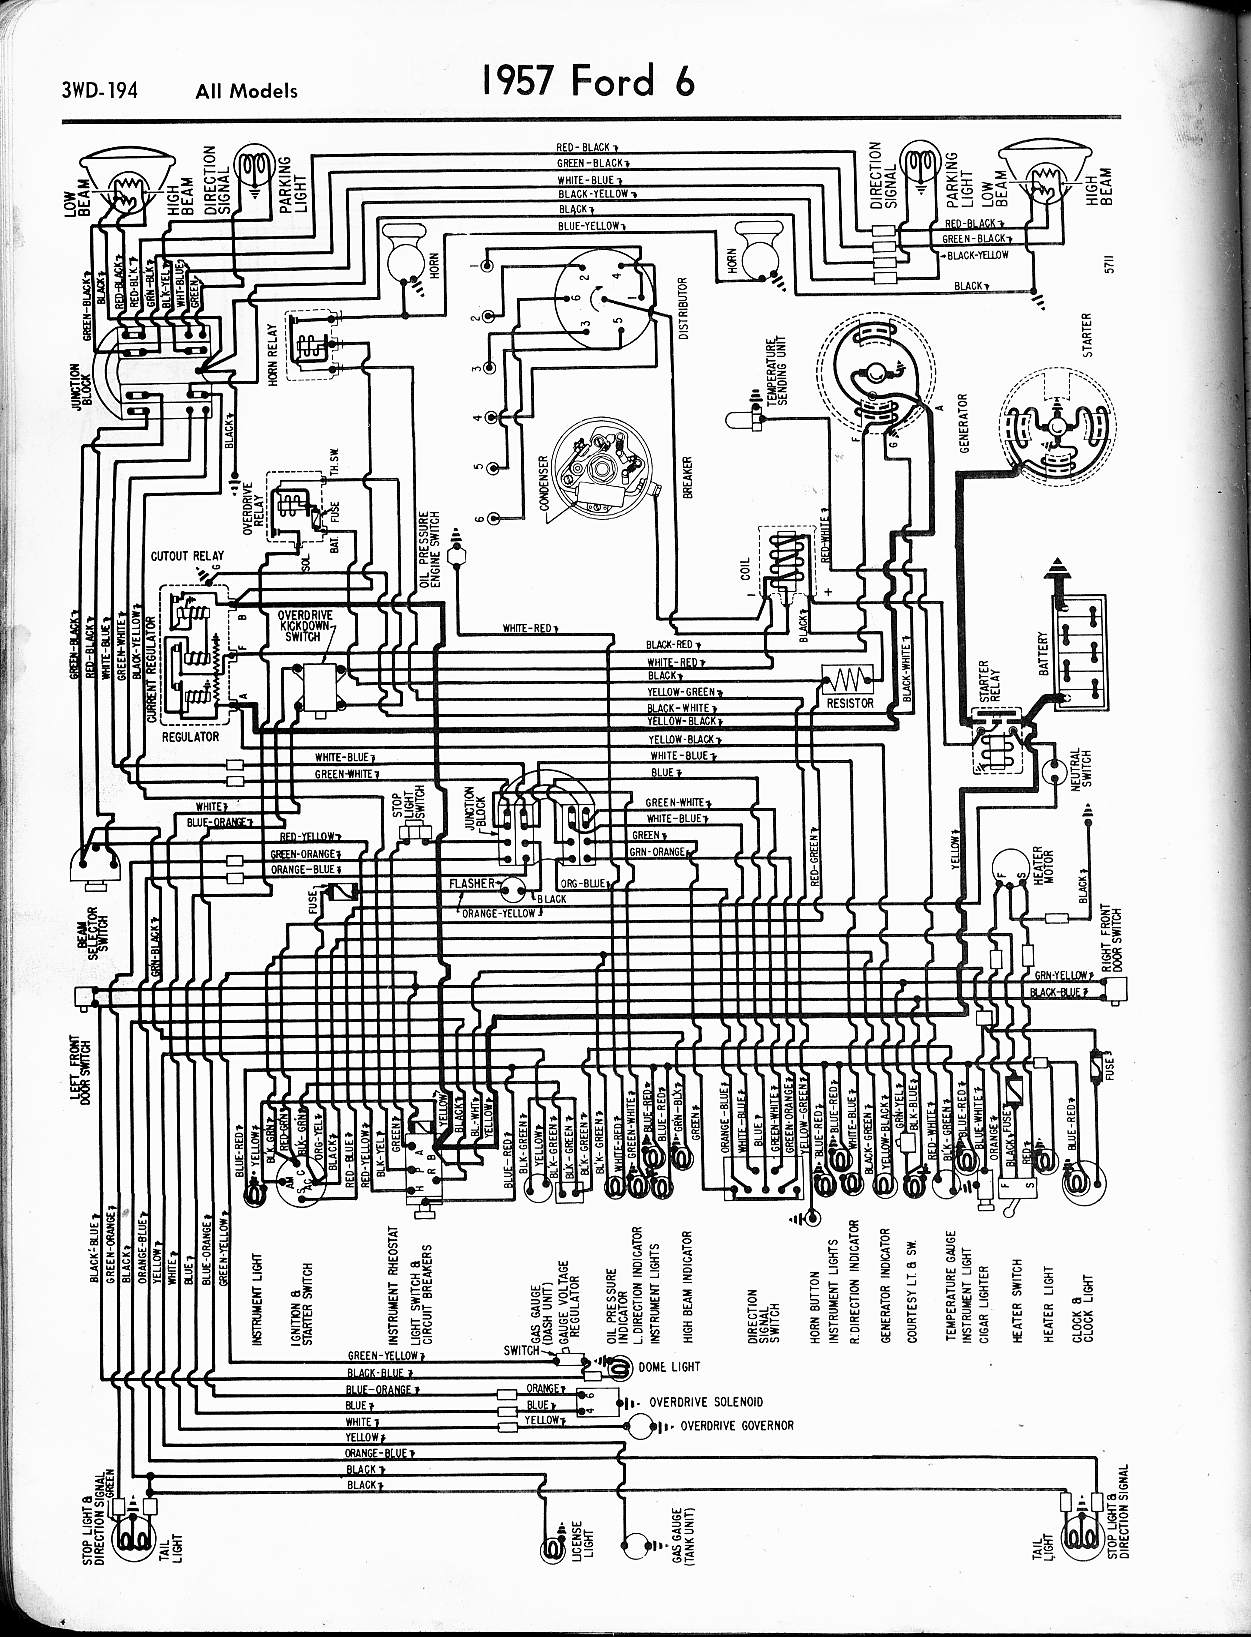 Ford Wiring Diagram For Dummies - Block And Schematic Diagrams •